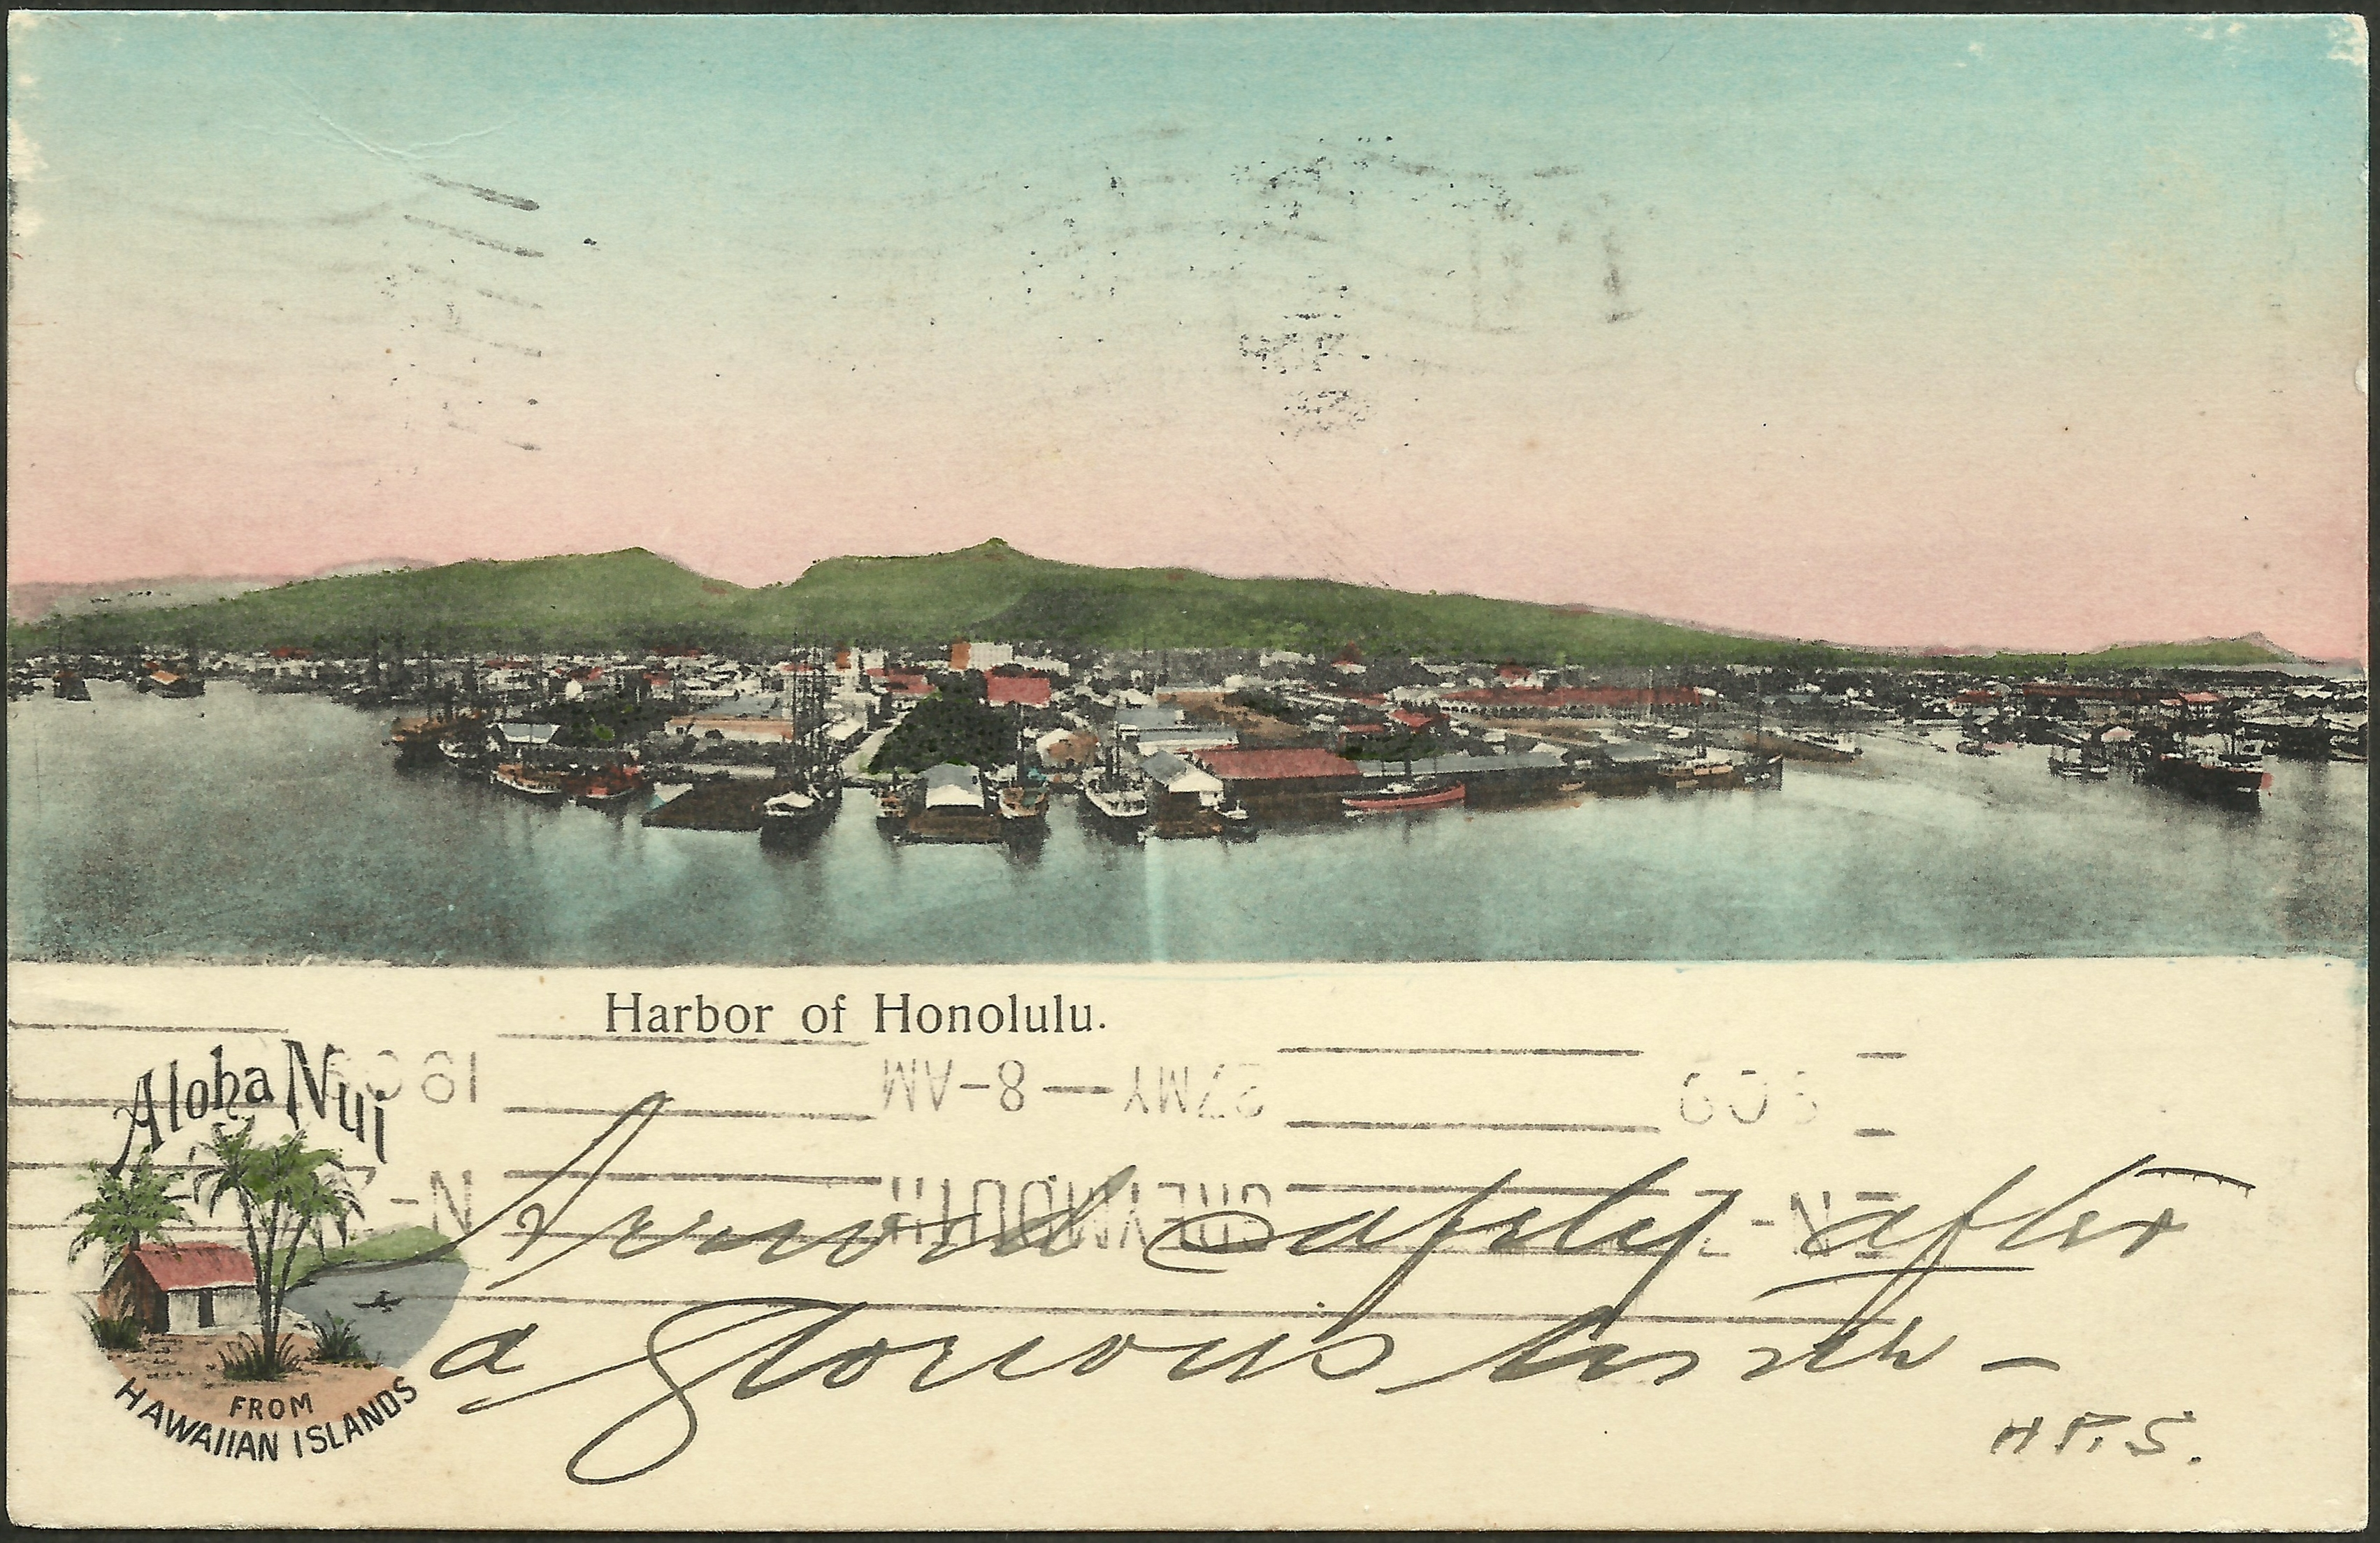 View of Honolulu, Hawaii, on postcard mailed April 27, 1909